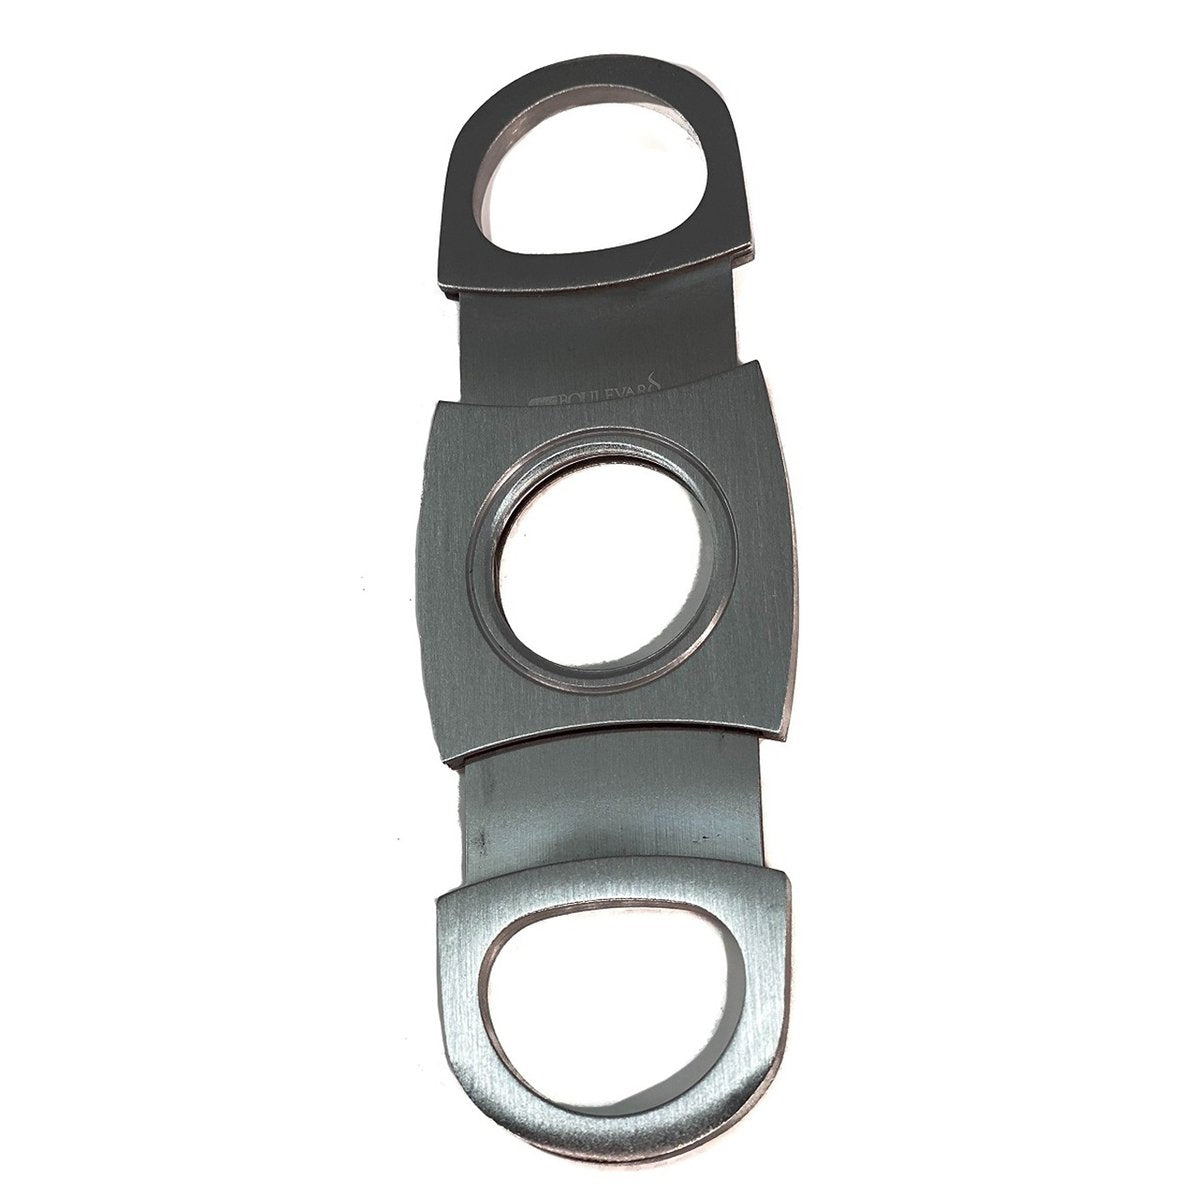 Cigar Cutter CLASSIC Stainless Steel Double Blade